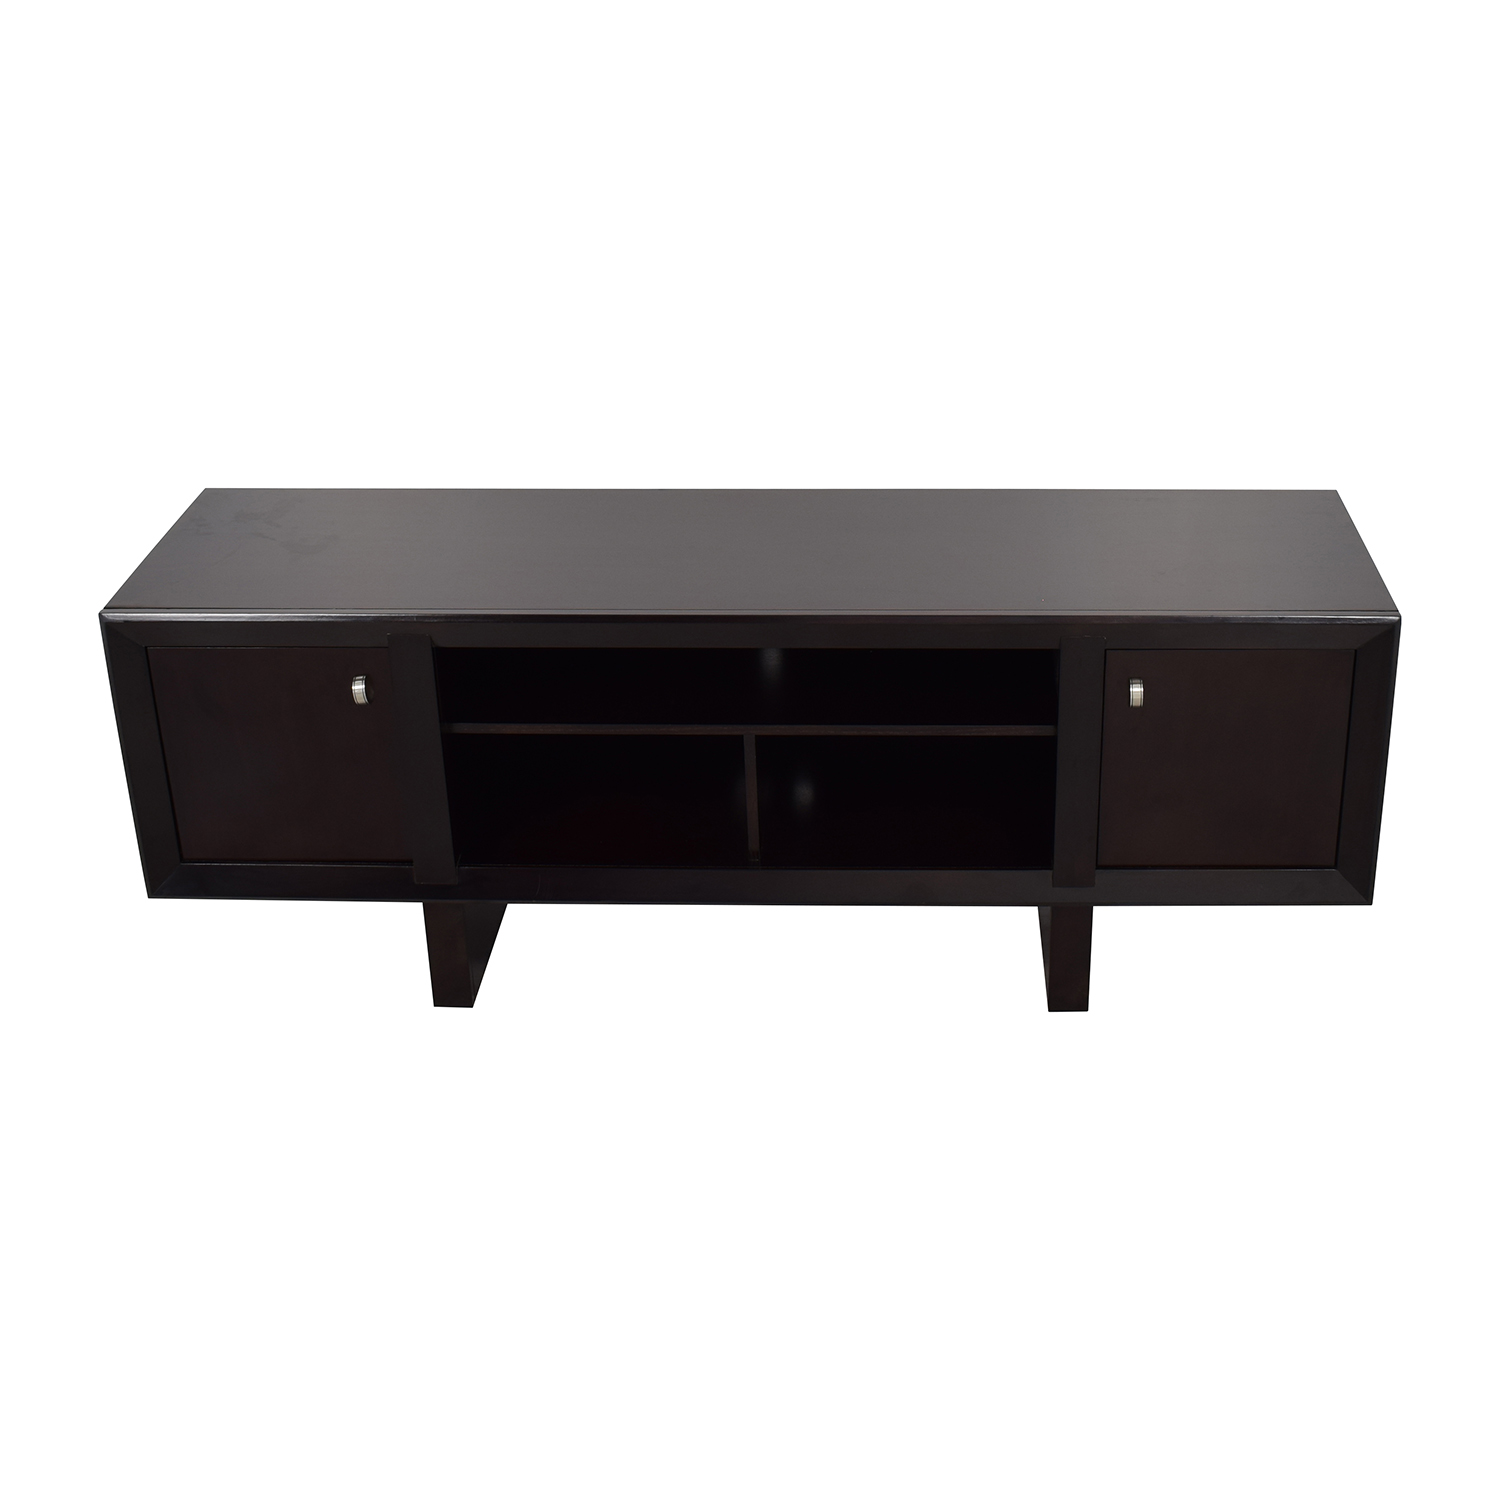 Raymour and Flanigan Raymour & Flanigan Park Avenue Black TV Stand coupon